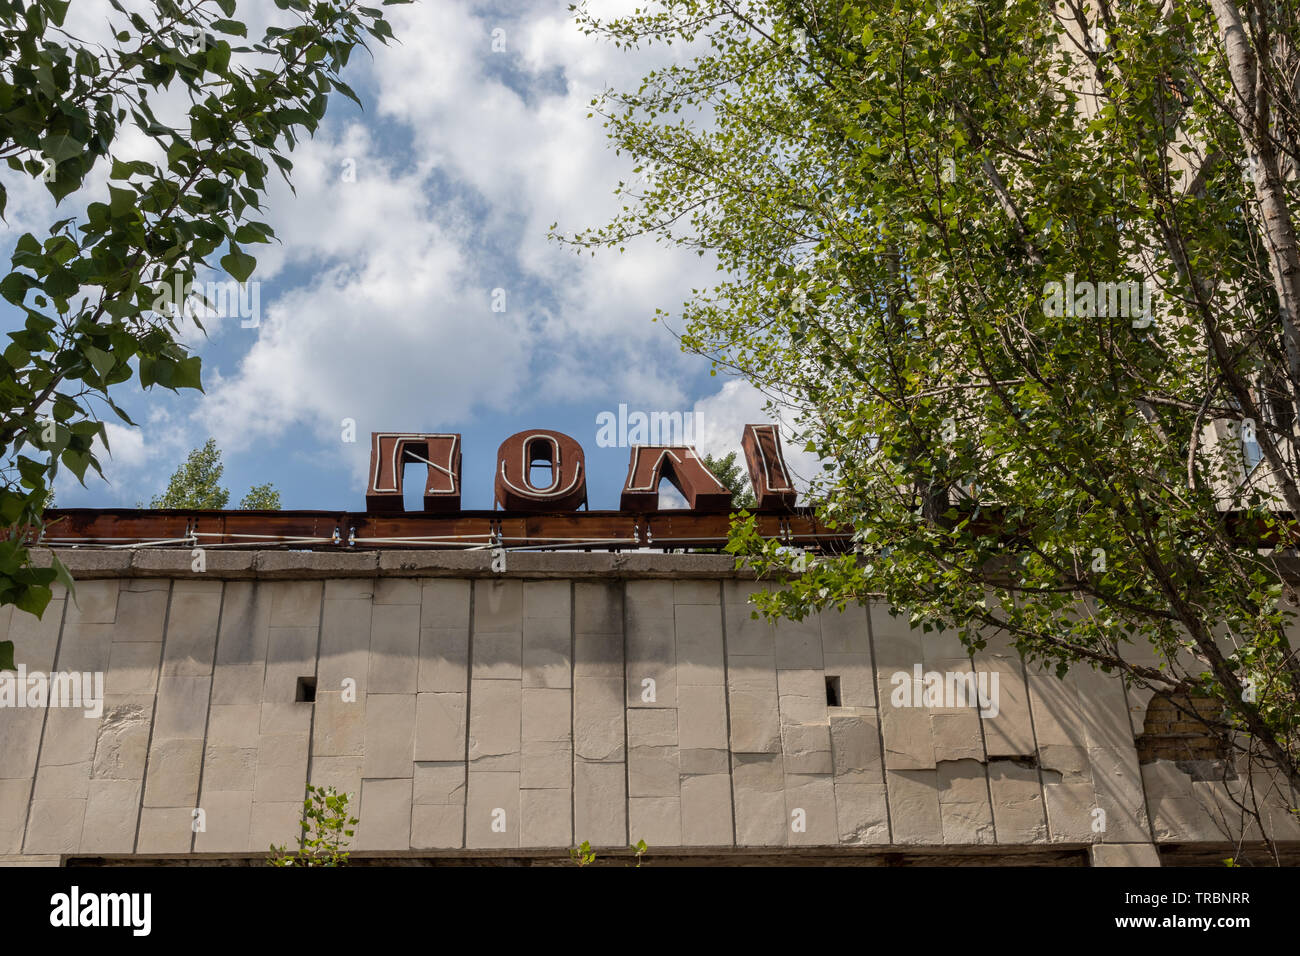 Abandoned  city of Pripyat near the former Chernobyl nuclear power plant, Chernobyl Exclusion Zone, Ukraine - Stock Image